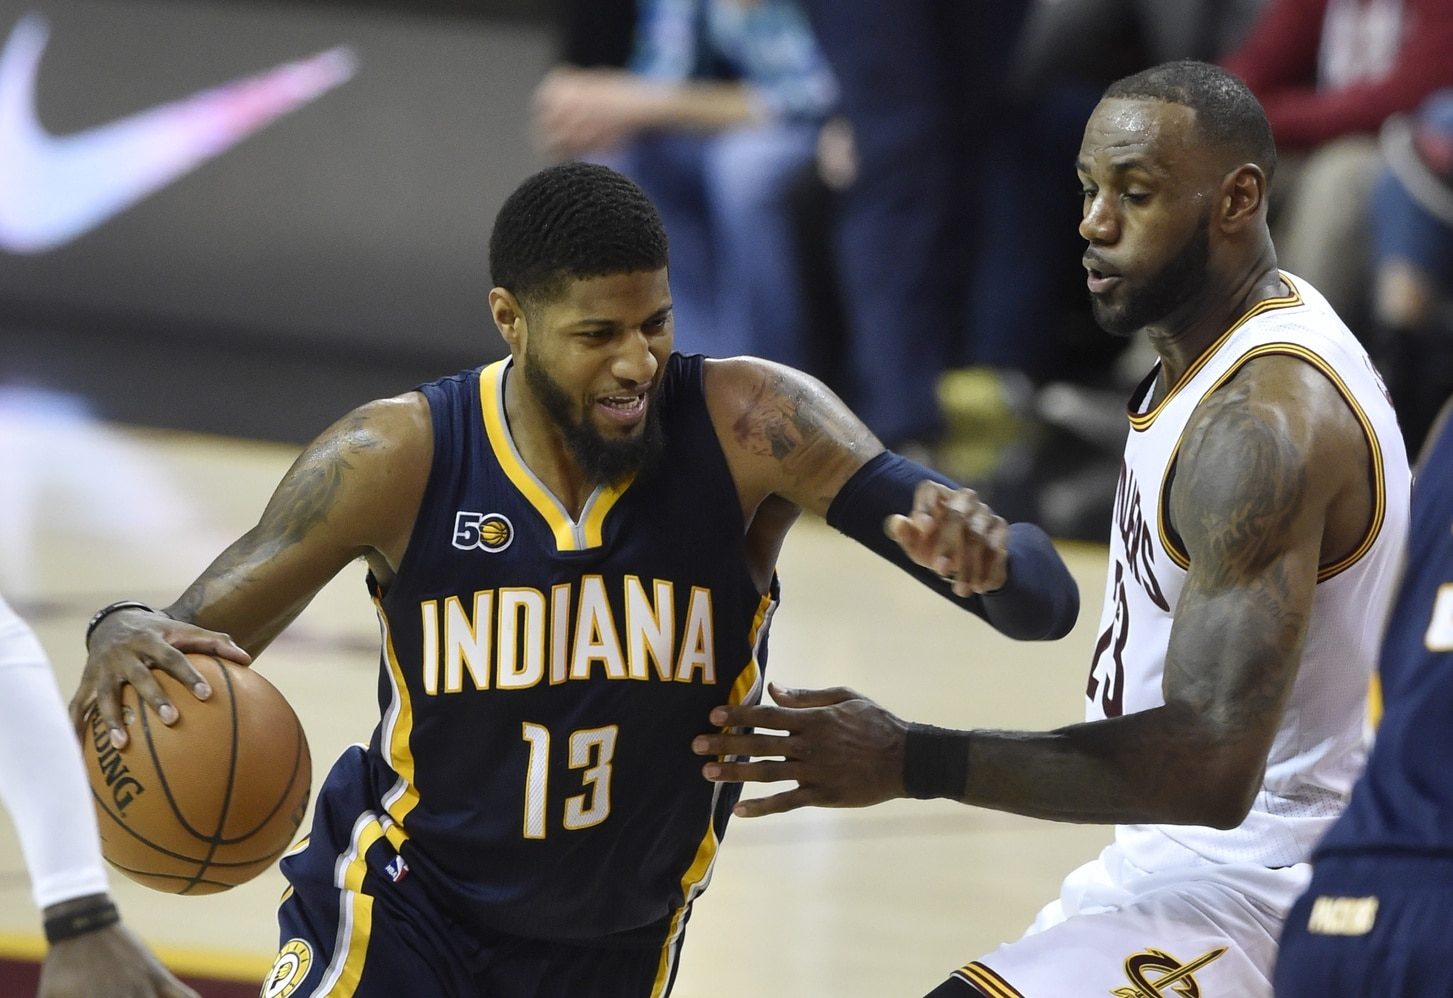 Caption: Apr 2, 2017; Cleveland, OH, USA; Indiana Pacers forward Paul George (13) drives against Cleveland Cavaliers forward LeBron James (23) in the second quarter at Quicken Loans Arena. Mandatory Credit: David Richard-USA TODAY Sports